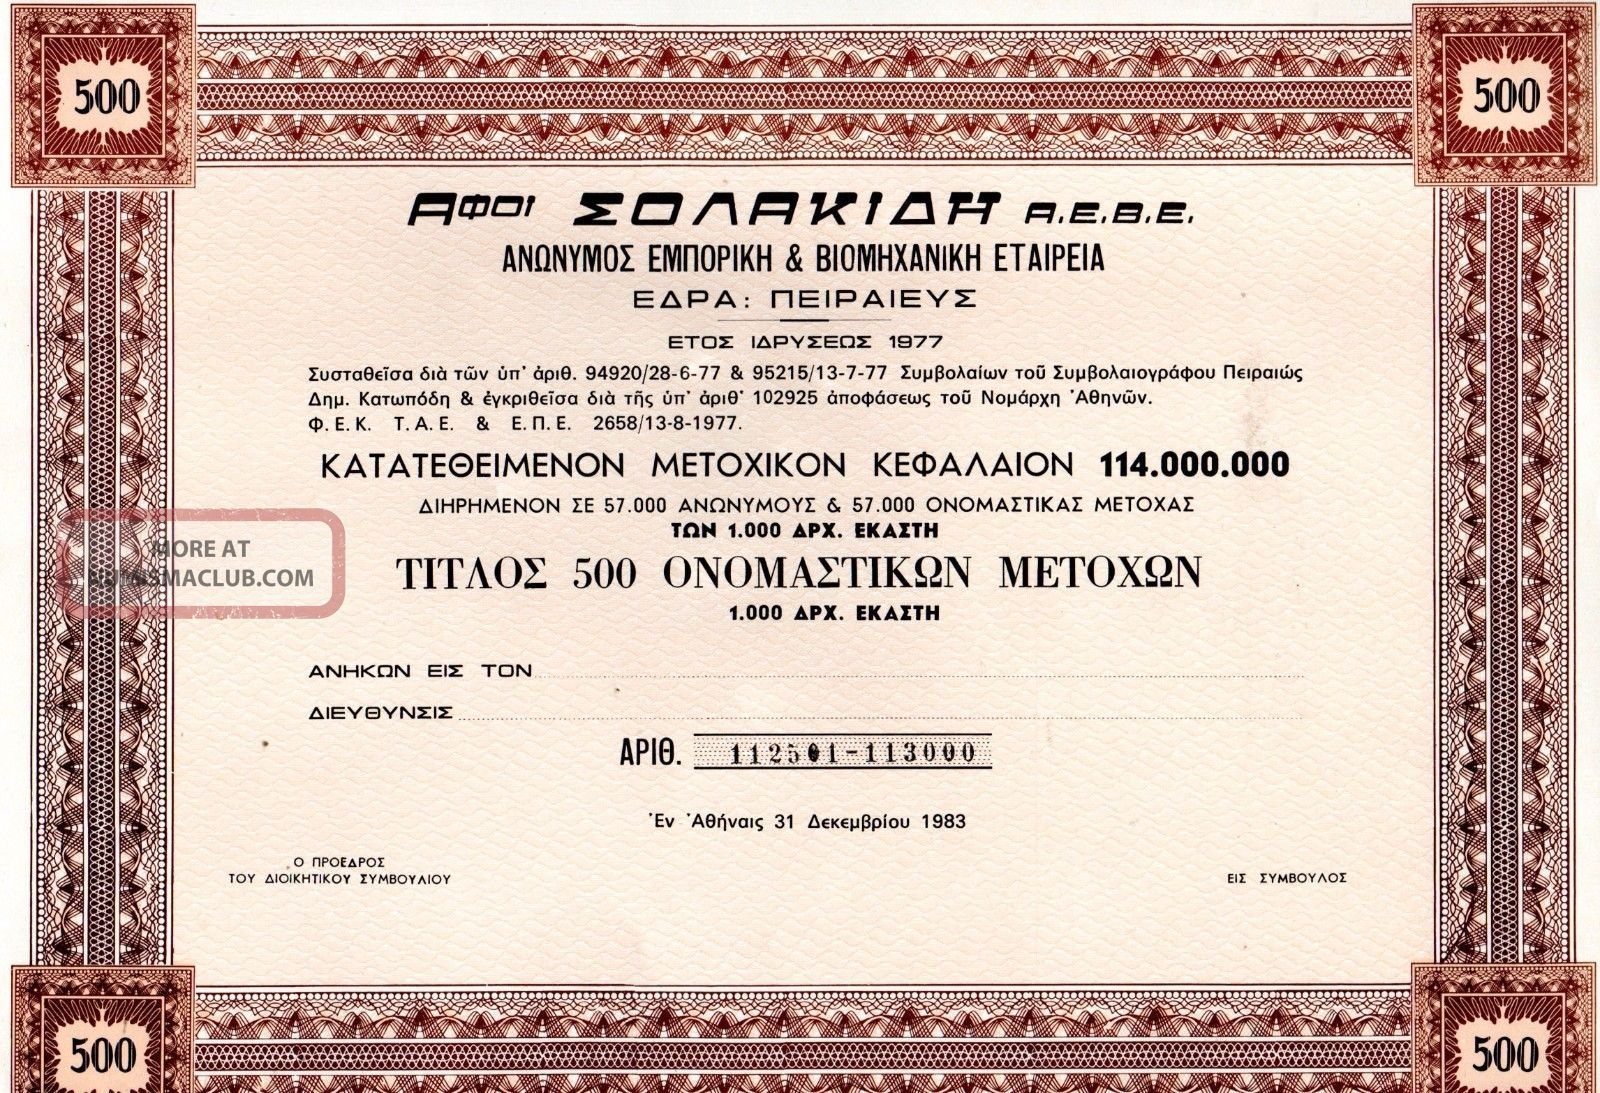 Greek Commercial Co.  Solakidh Sa Title Of 500 Shares Bond Stock Certificate 1983 World photo